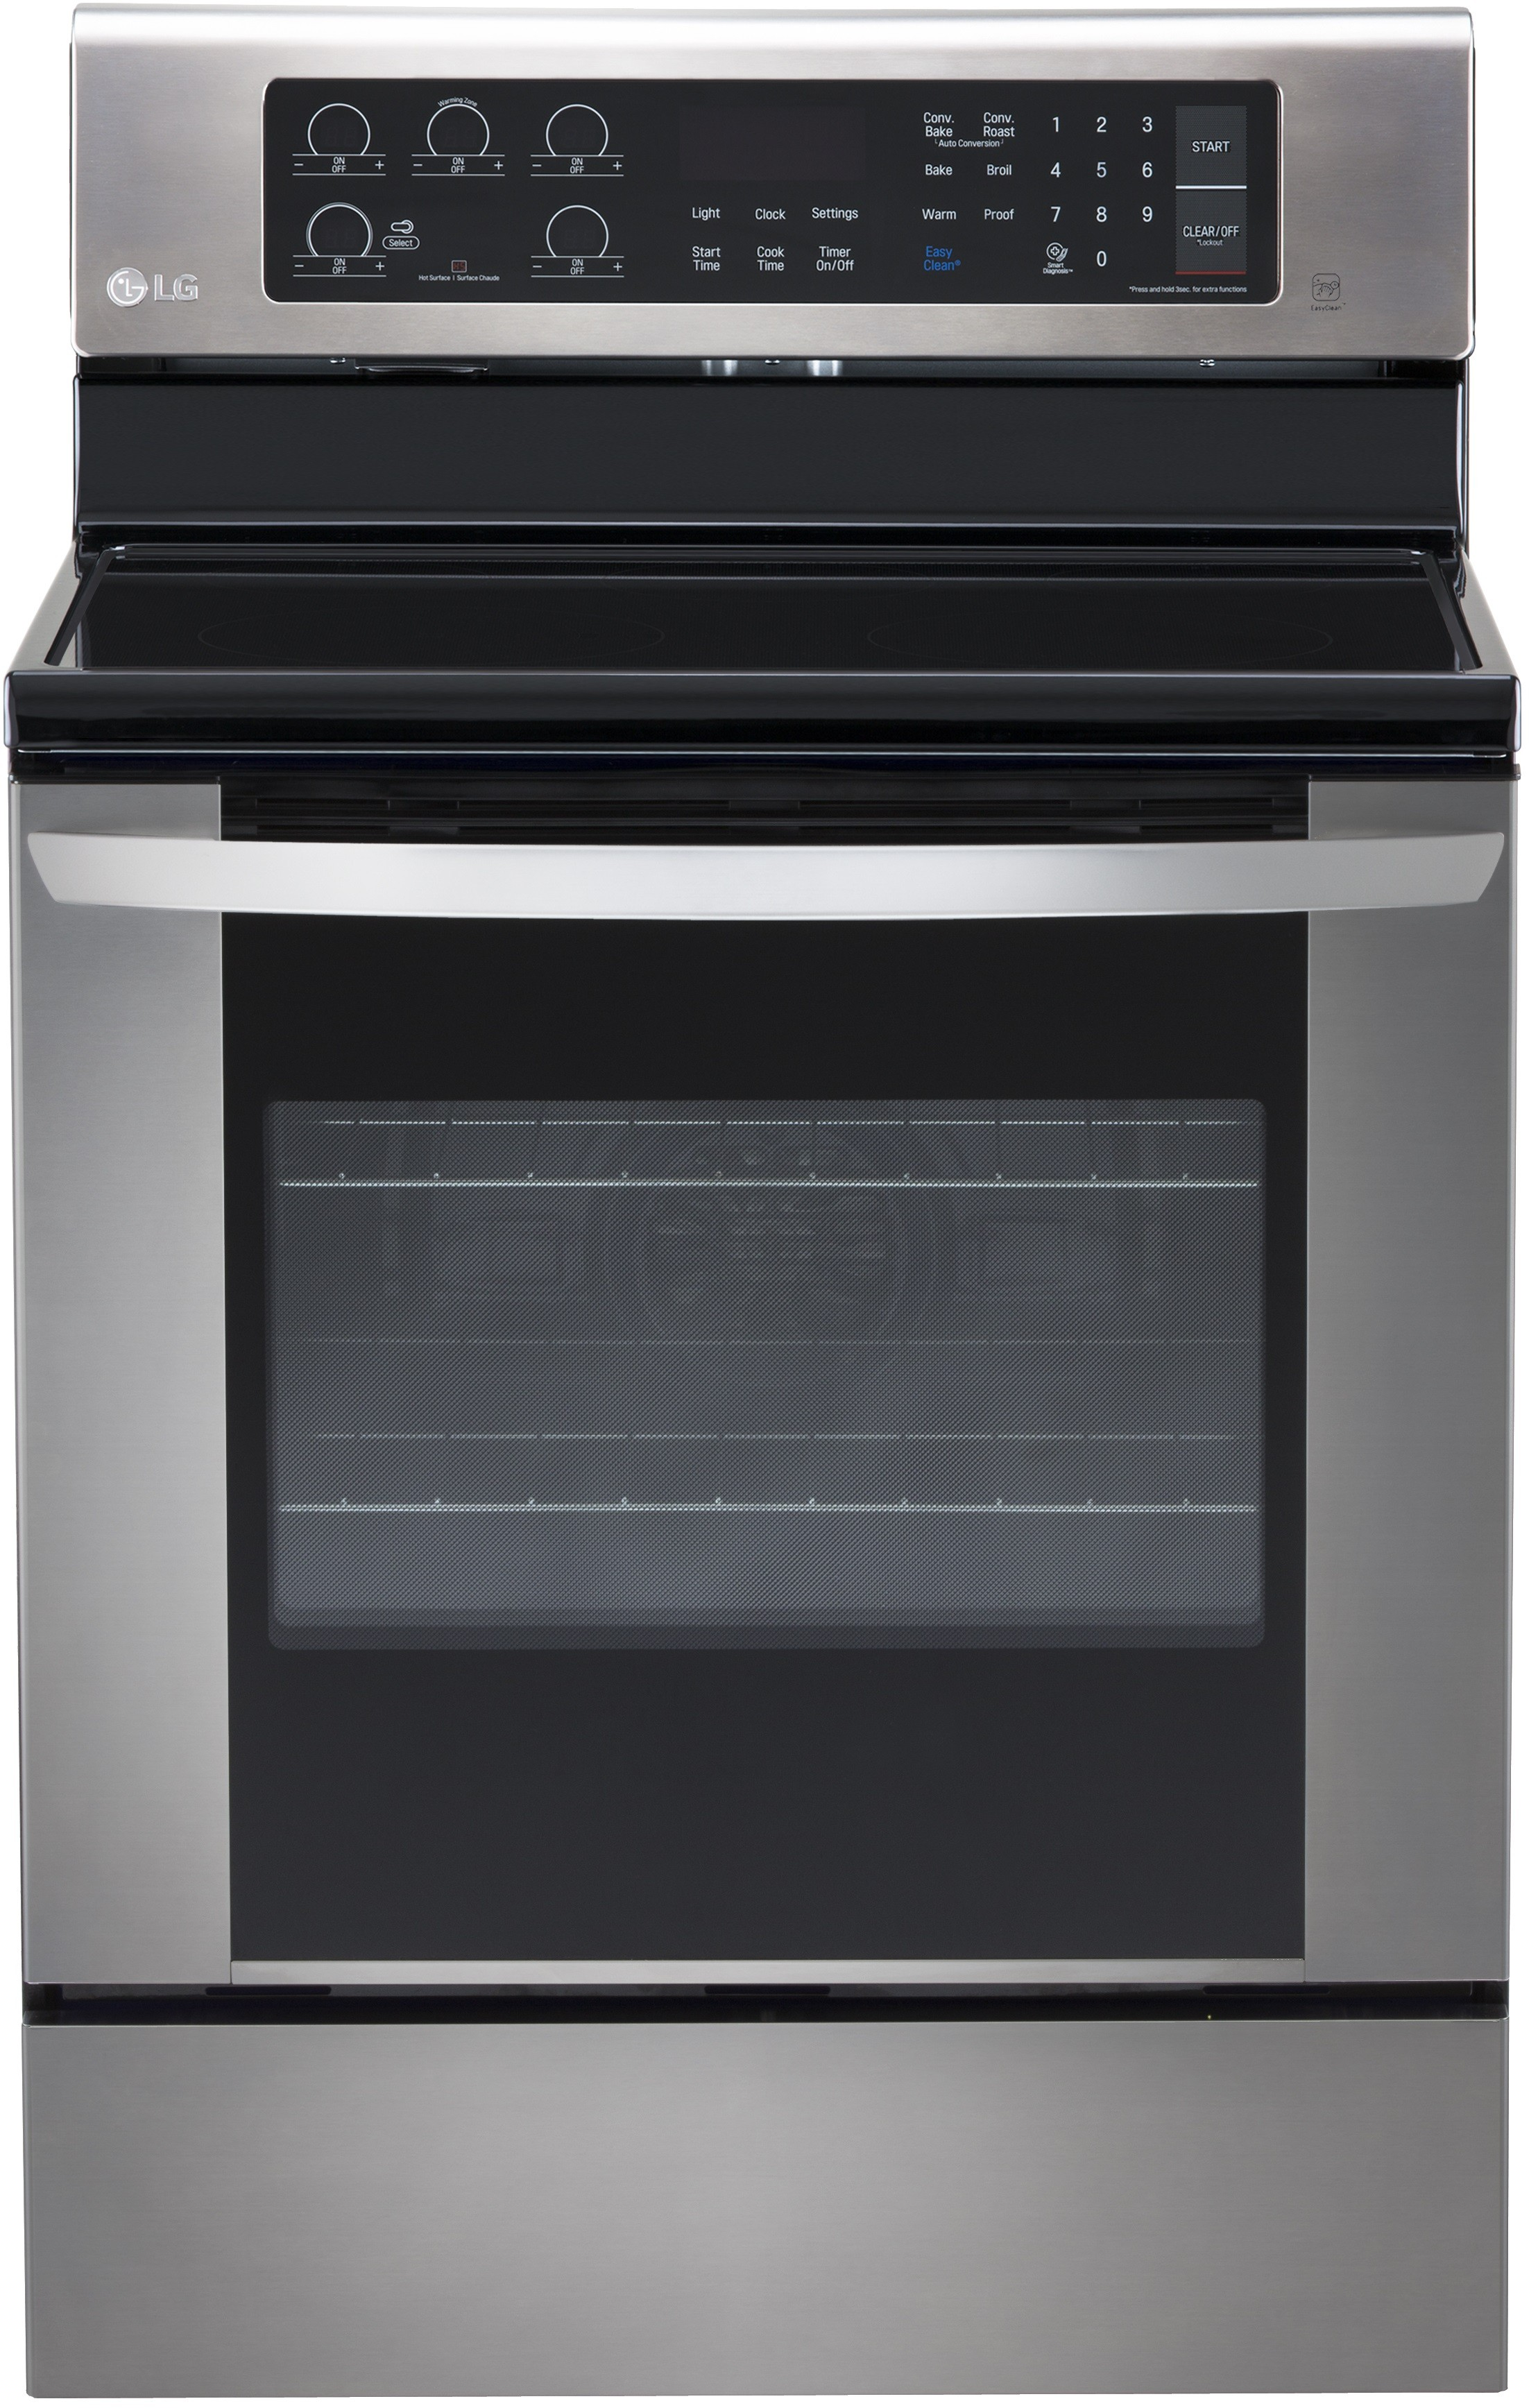 Lg Lre3061st 30 Inch Electric Range With True Convection Burner 5 Heating Elements 6 3 Cu Ft Oven Capacity Brilliant Blue Interior And Storage